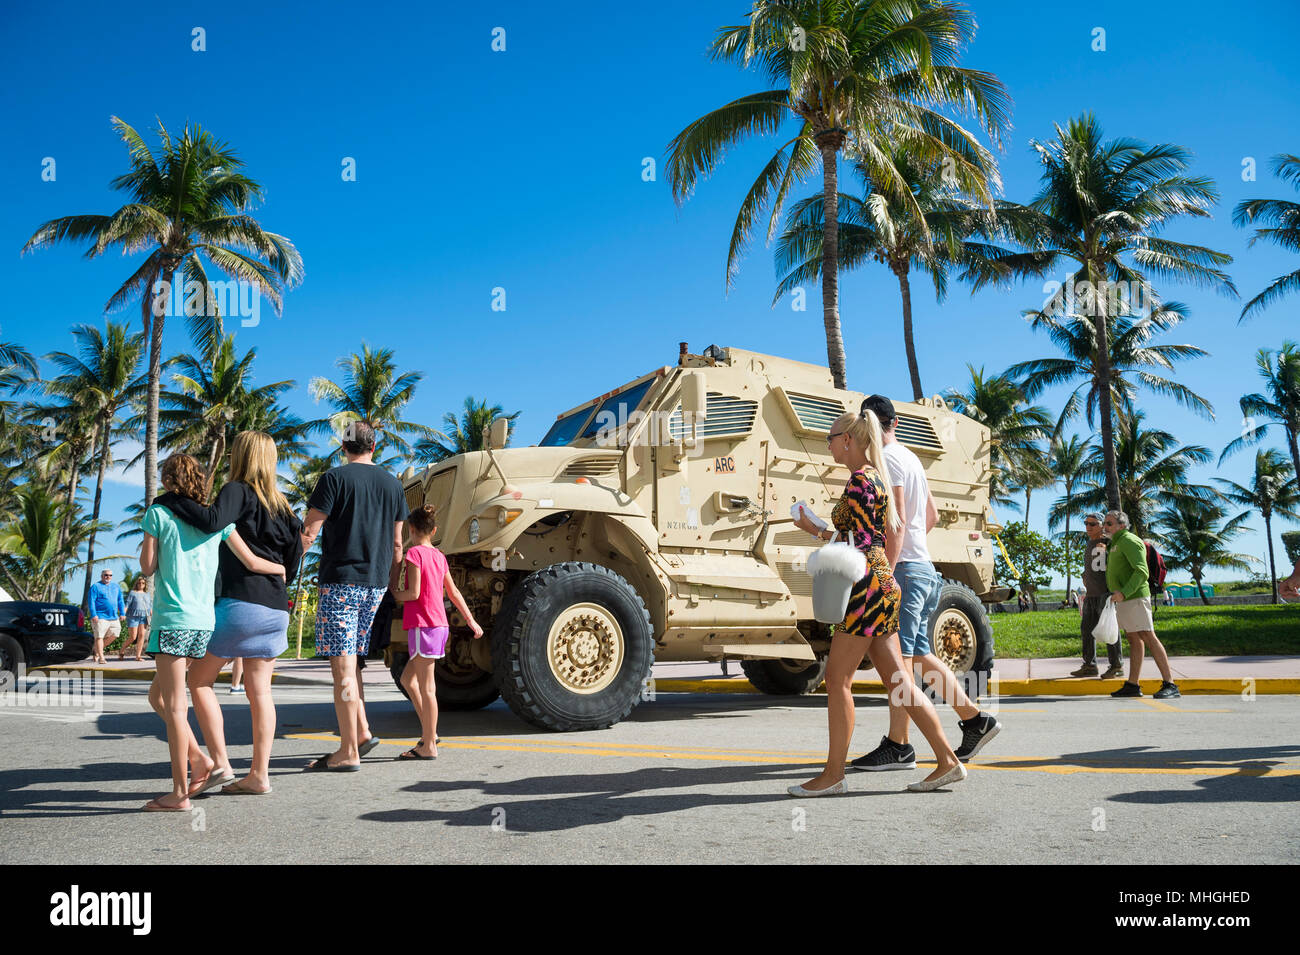 MIAMI - DECEMBER 29, 2017: Tourists pass a large armored military vehicle stationed on Ocean Drive as security is increased for holiday celebrations. - Stock Image